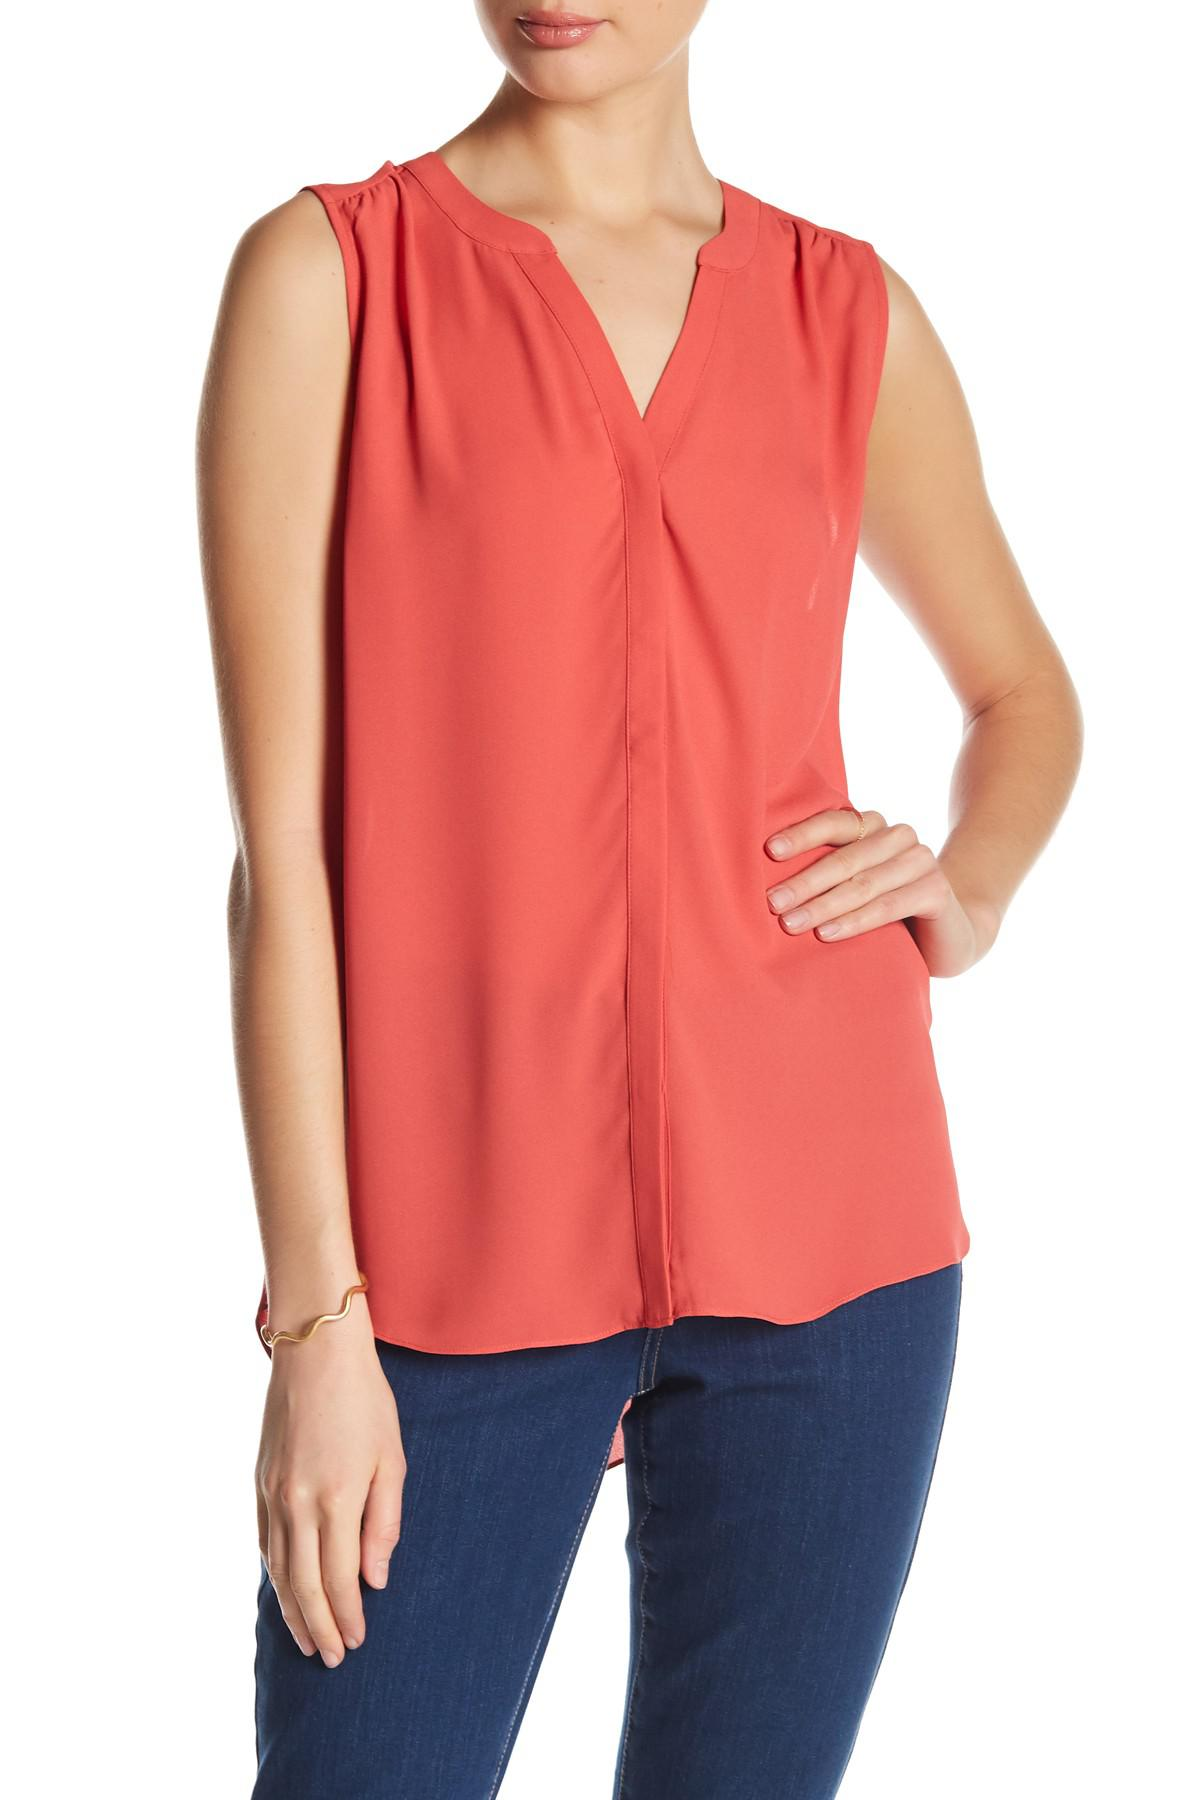 Outlet From China Buy Cheap Affordable Givenchy sleeveless split neck blouse Where To Buy Low Price Official Cheap Online PkdobNW